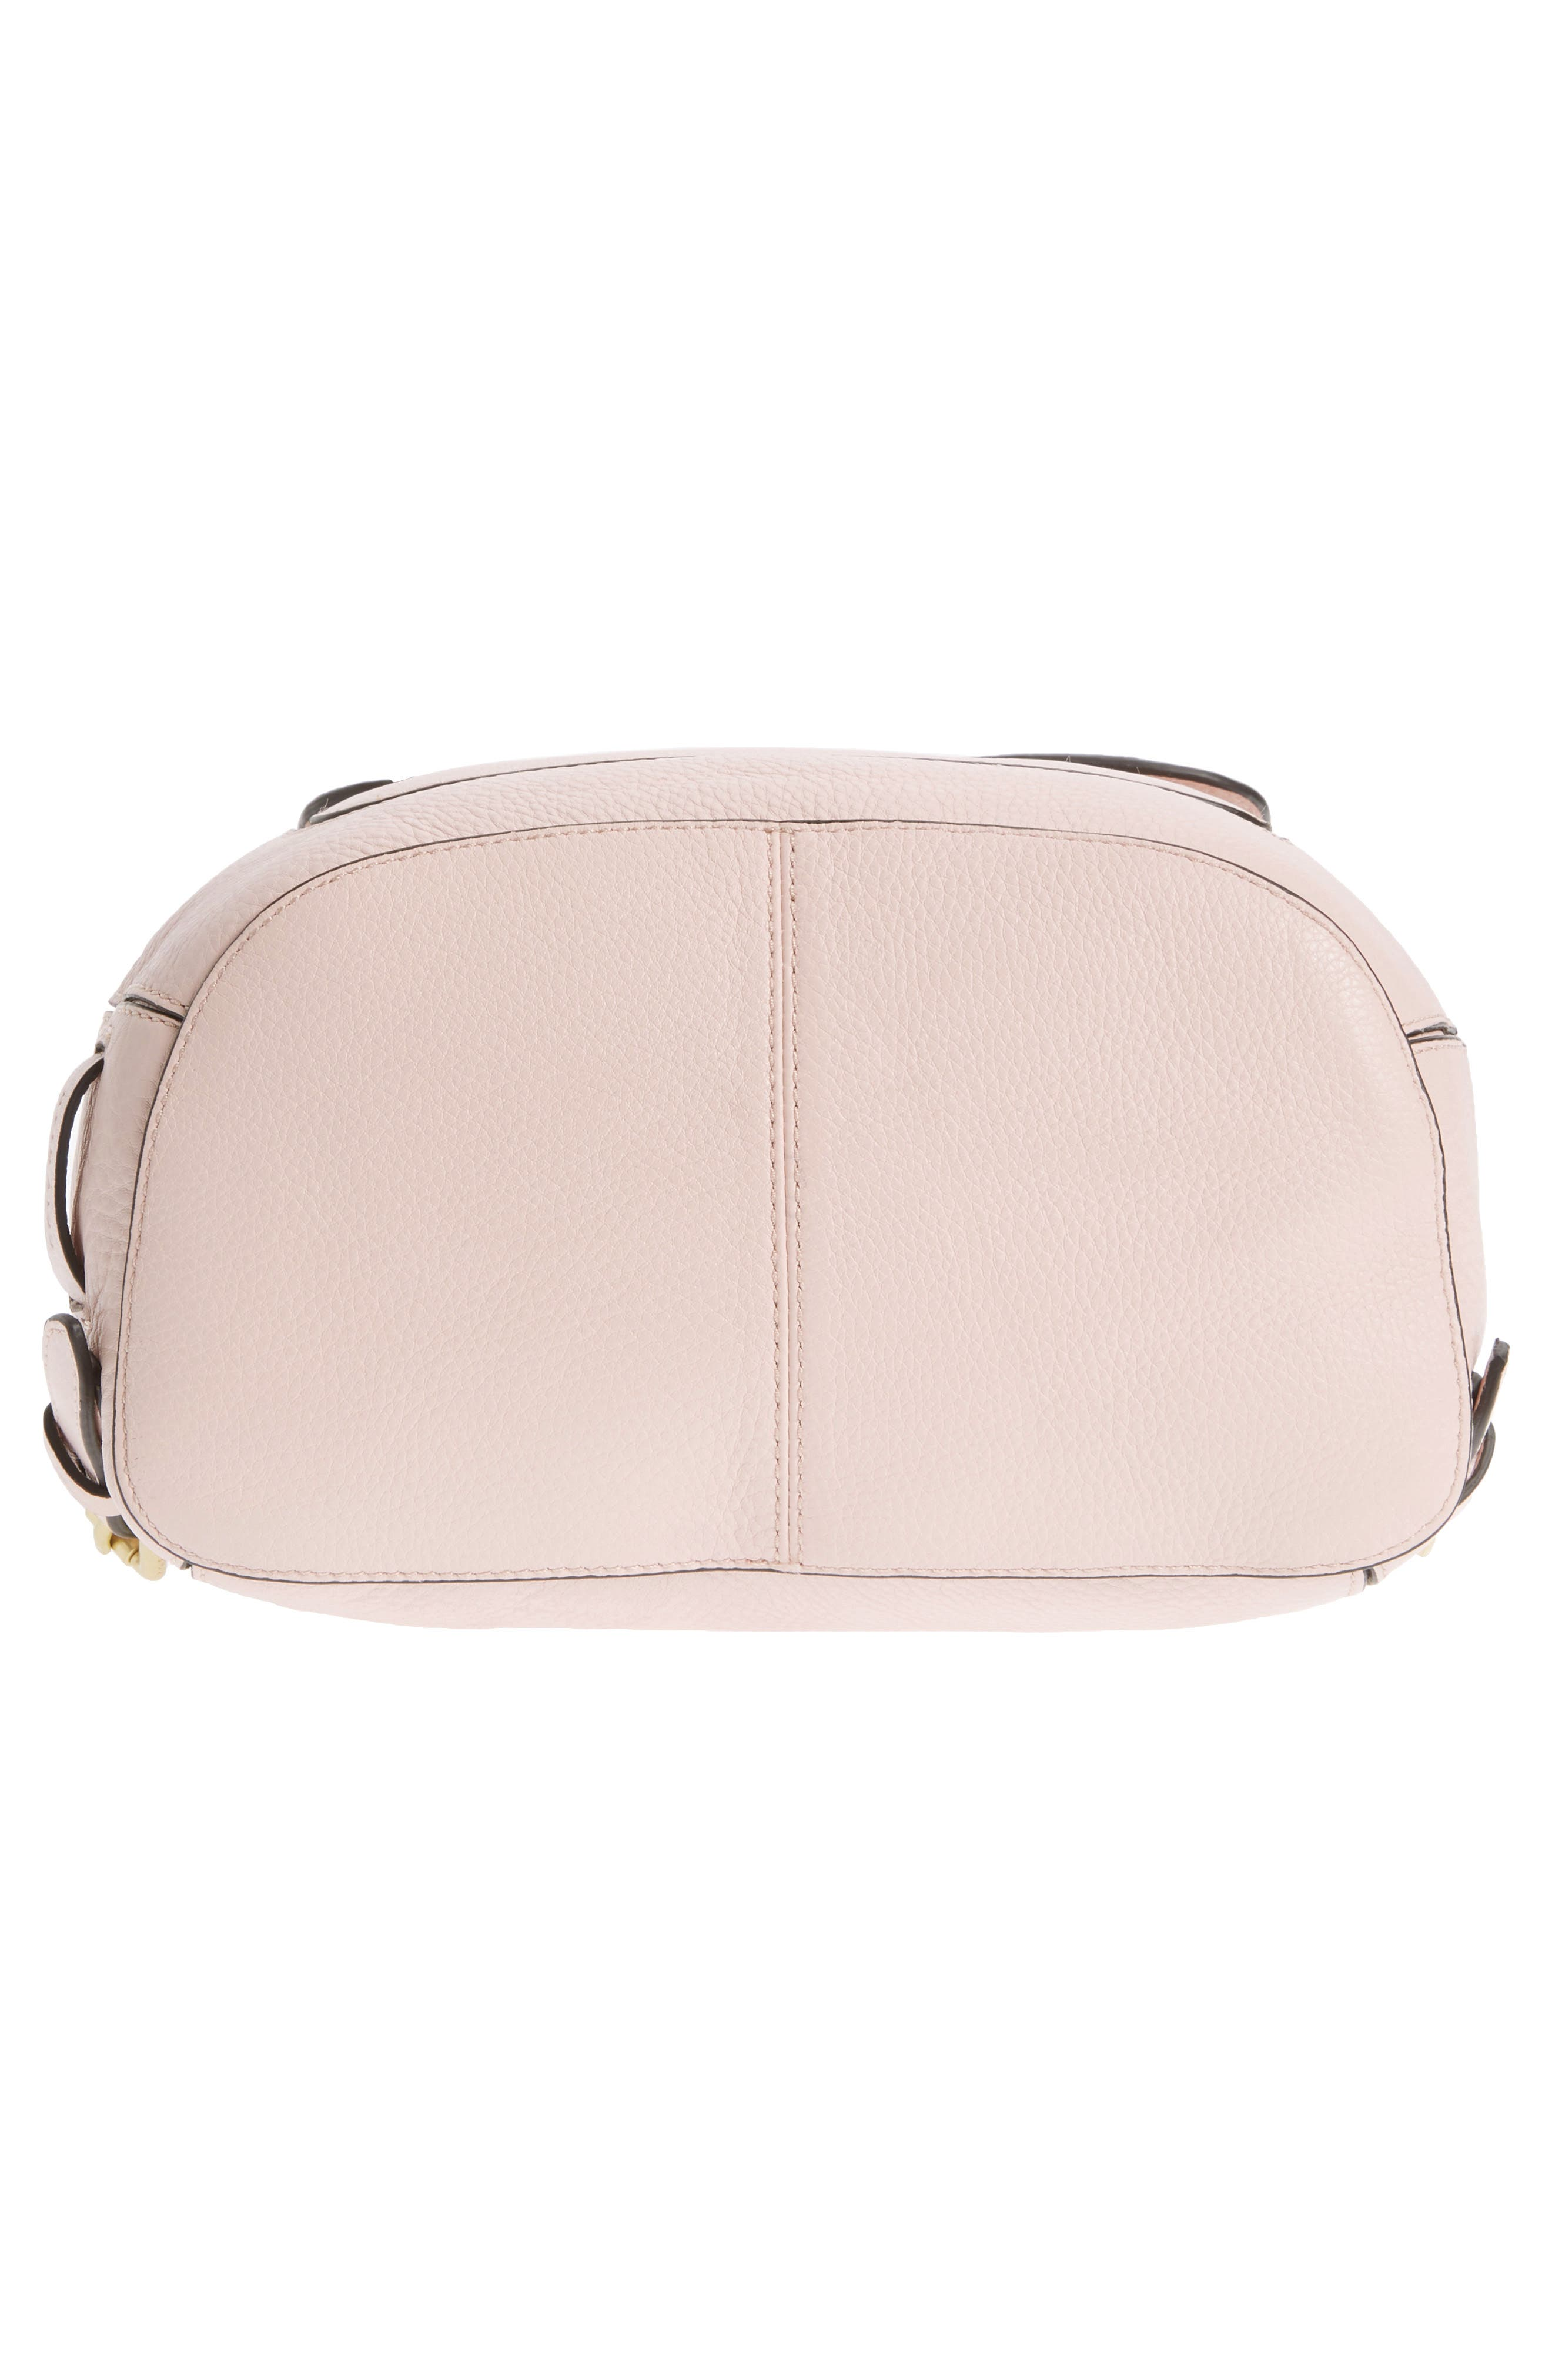 Cassidy RFID Pebbled Leather Backpack,                             Alternate thumbnail 3, color,                             Peach Blush